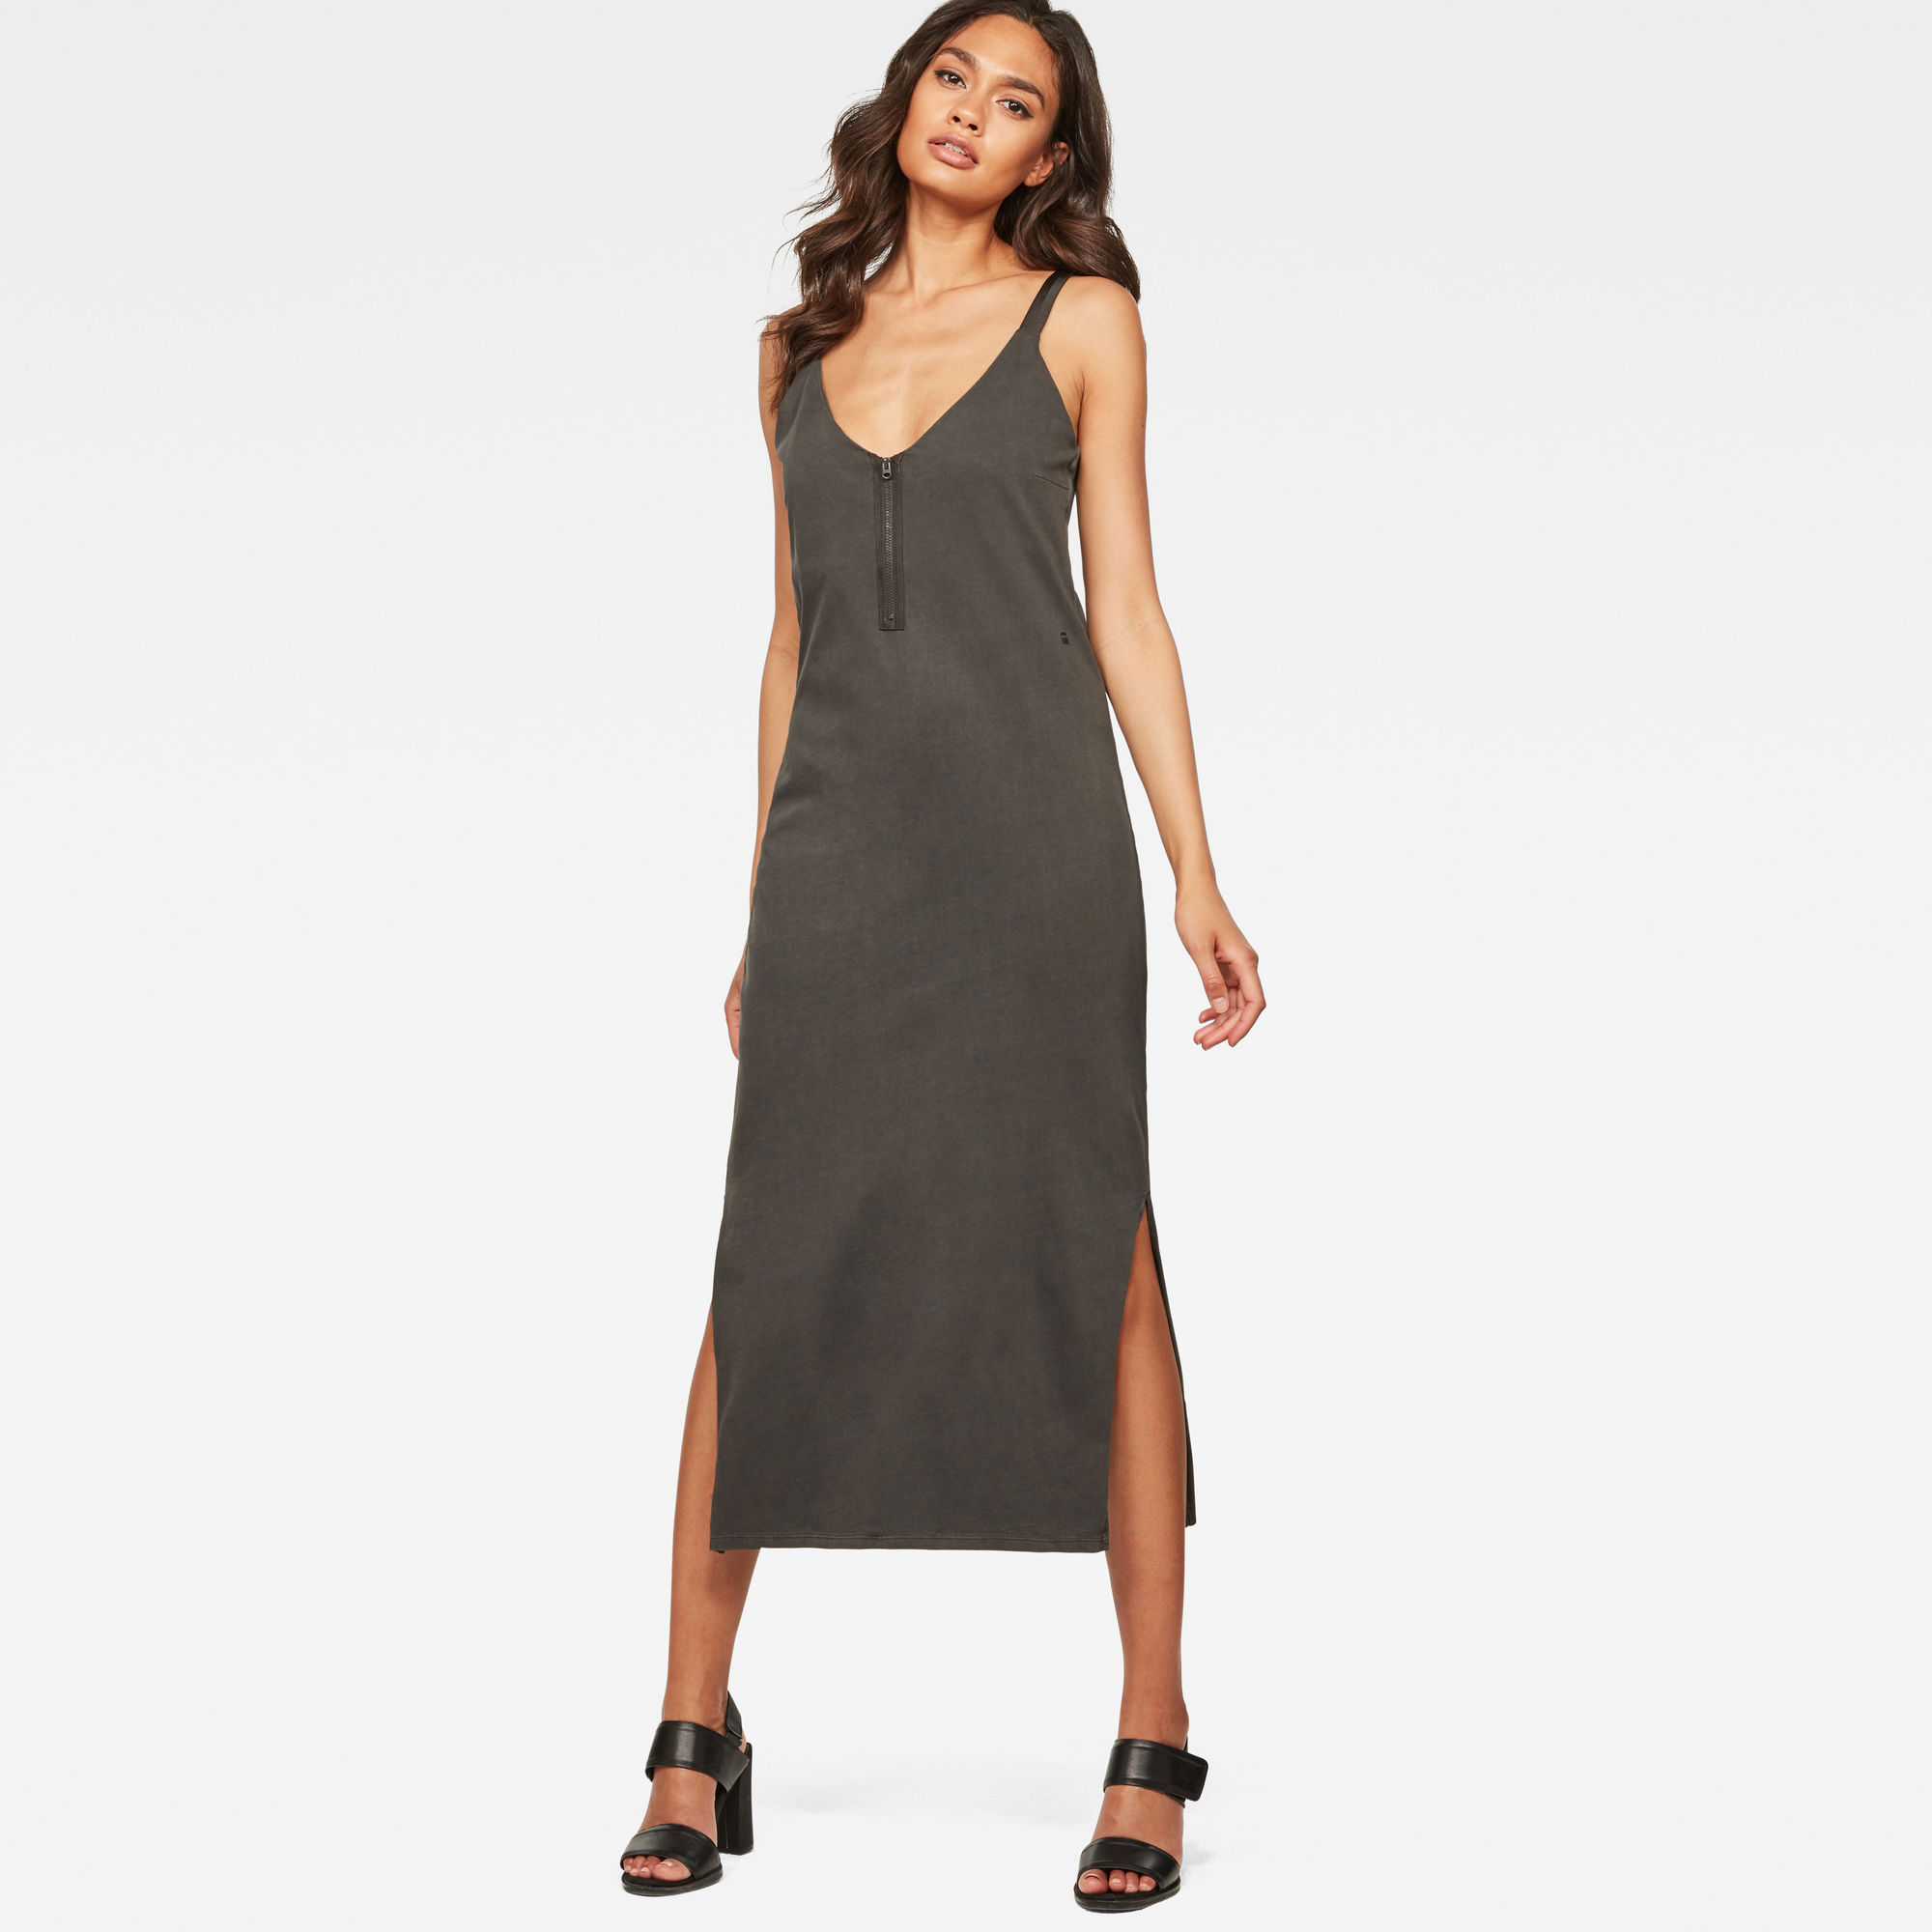 Image of G Star Raw Raw Correct Udal Sleeveless Dress